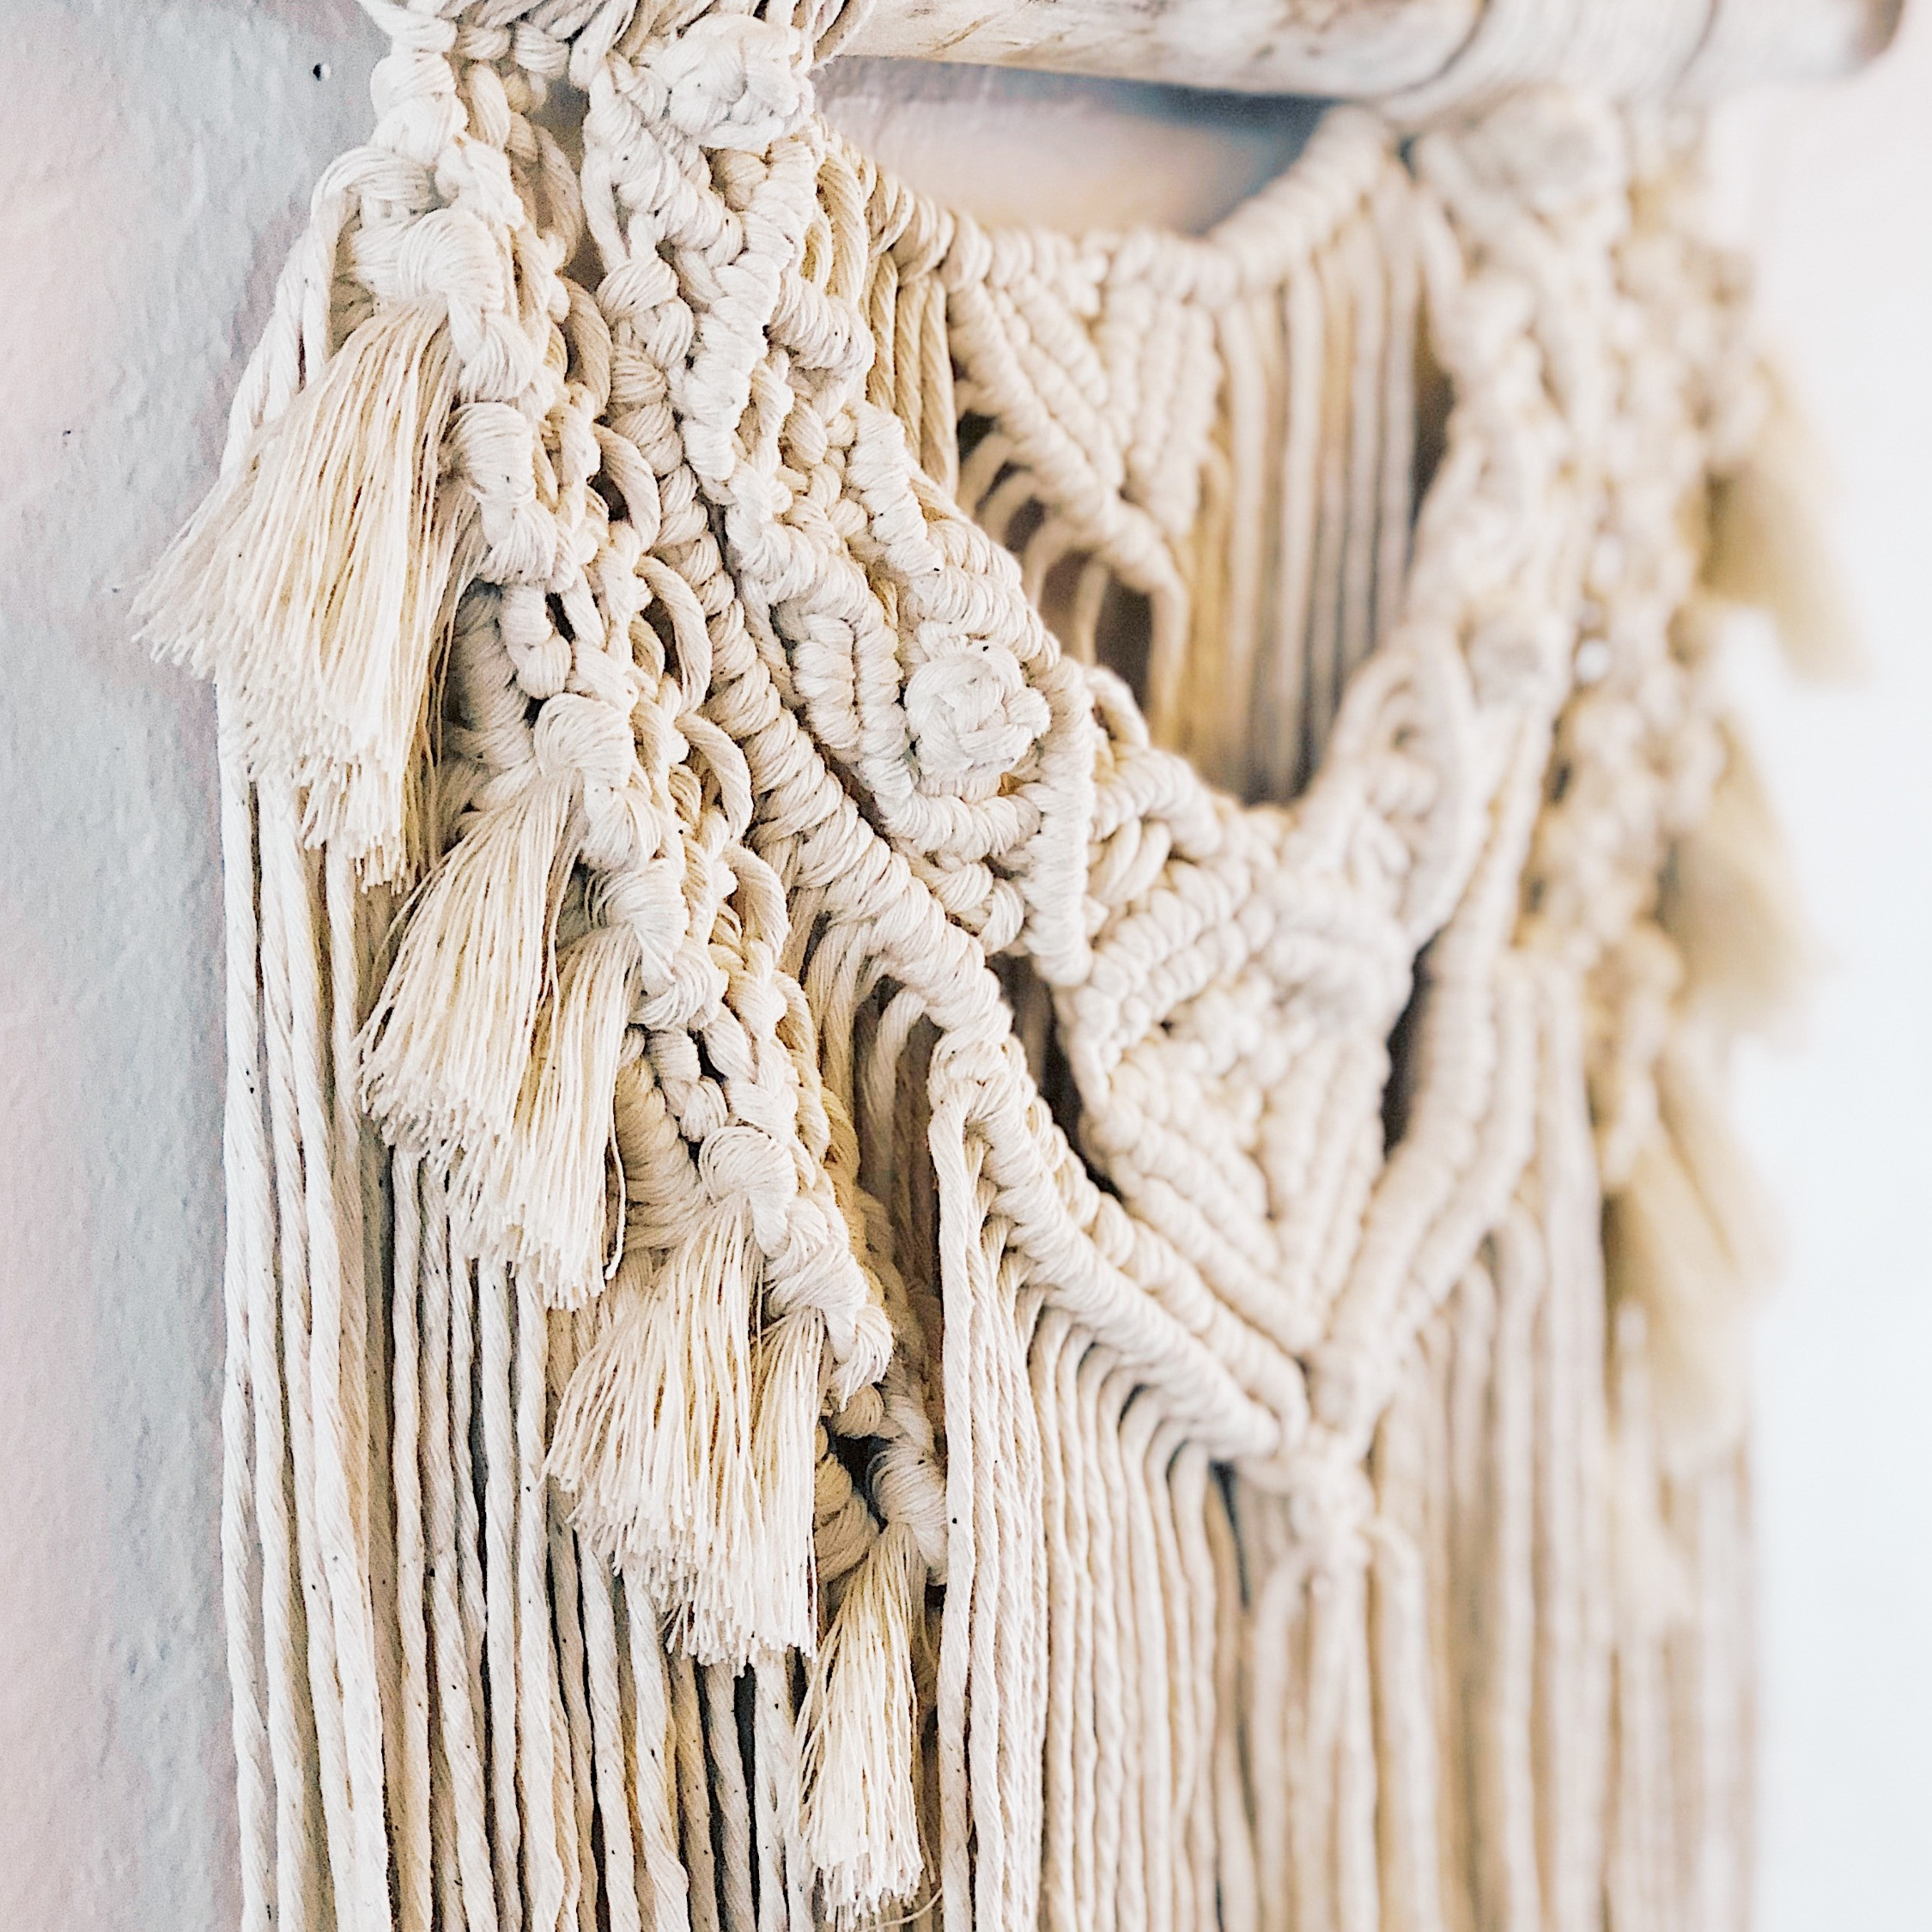 Beginner Macrame, at Gather and Mill